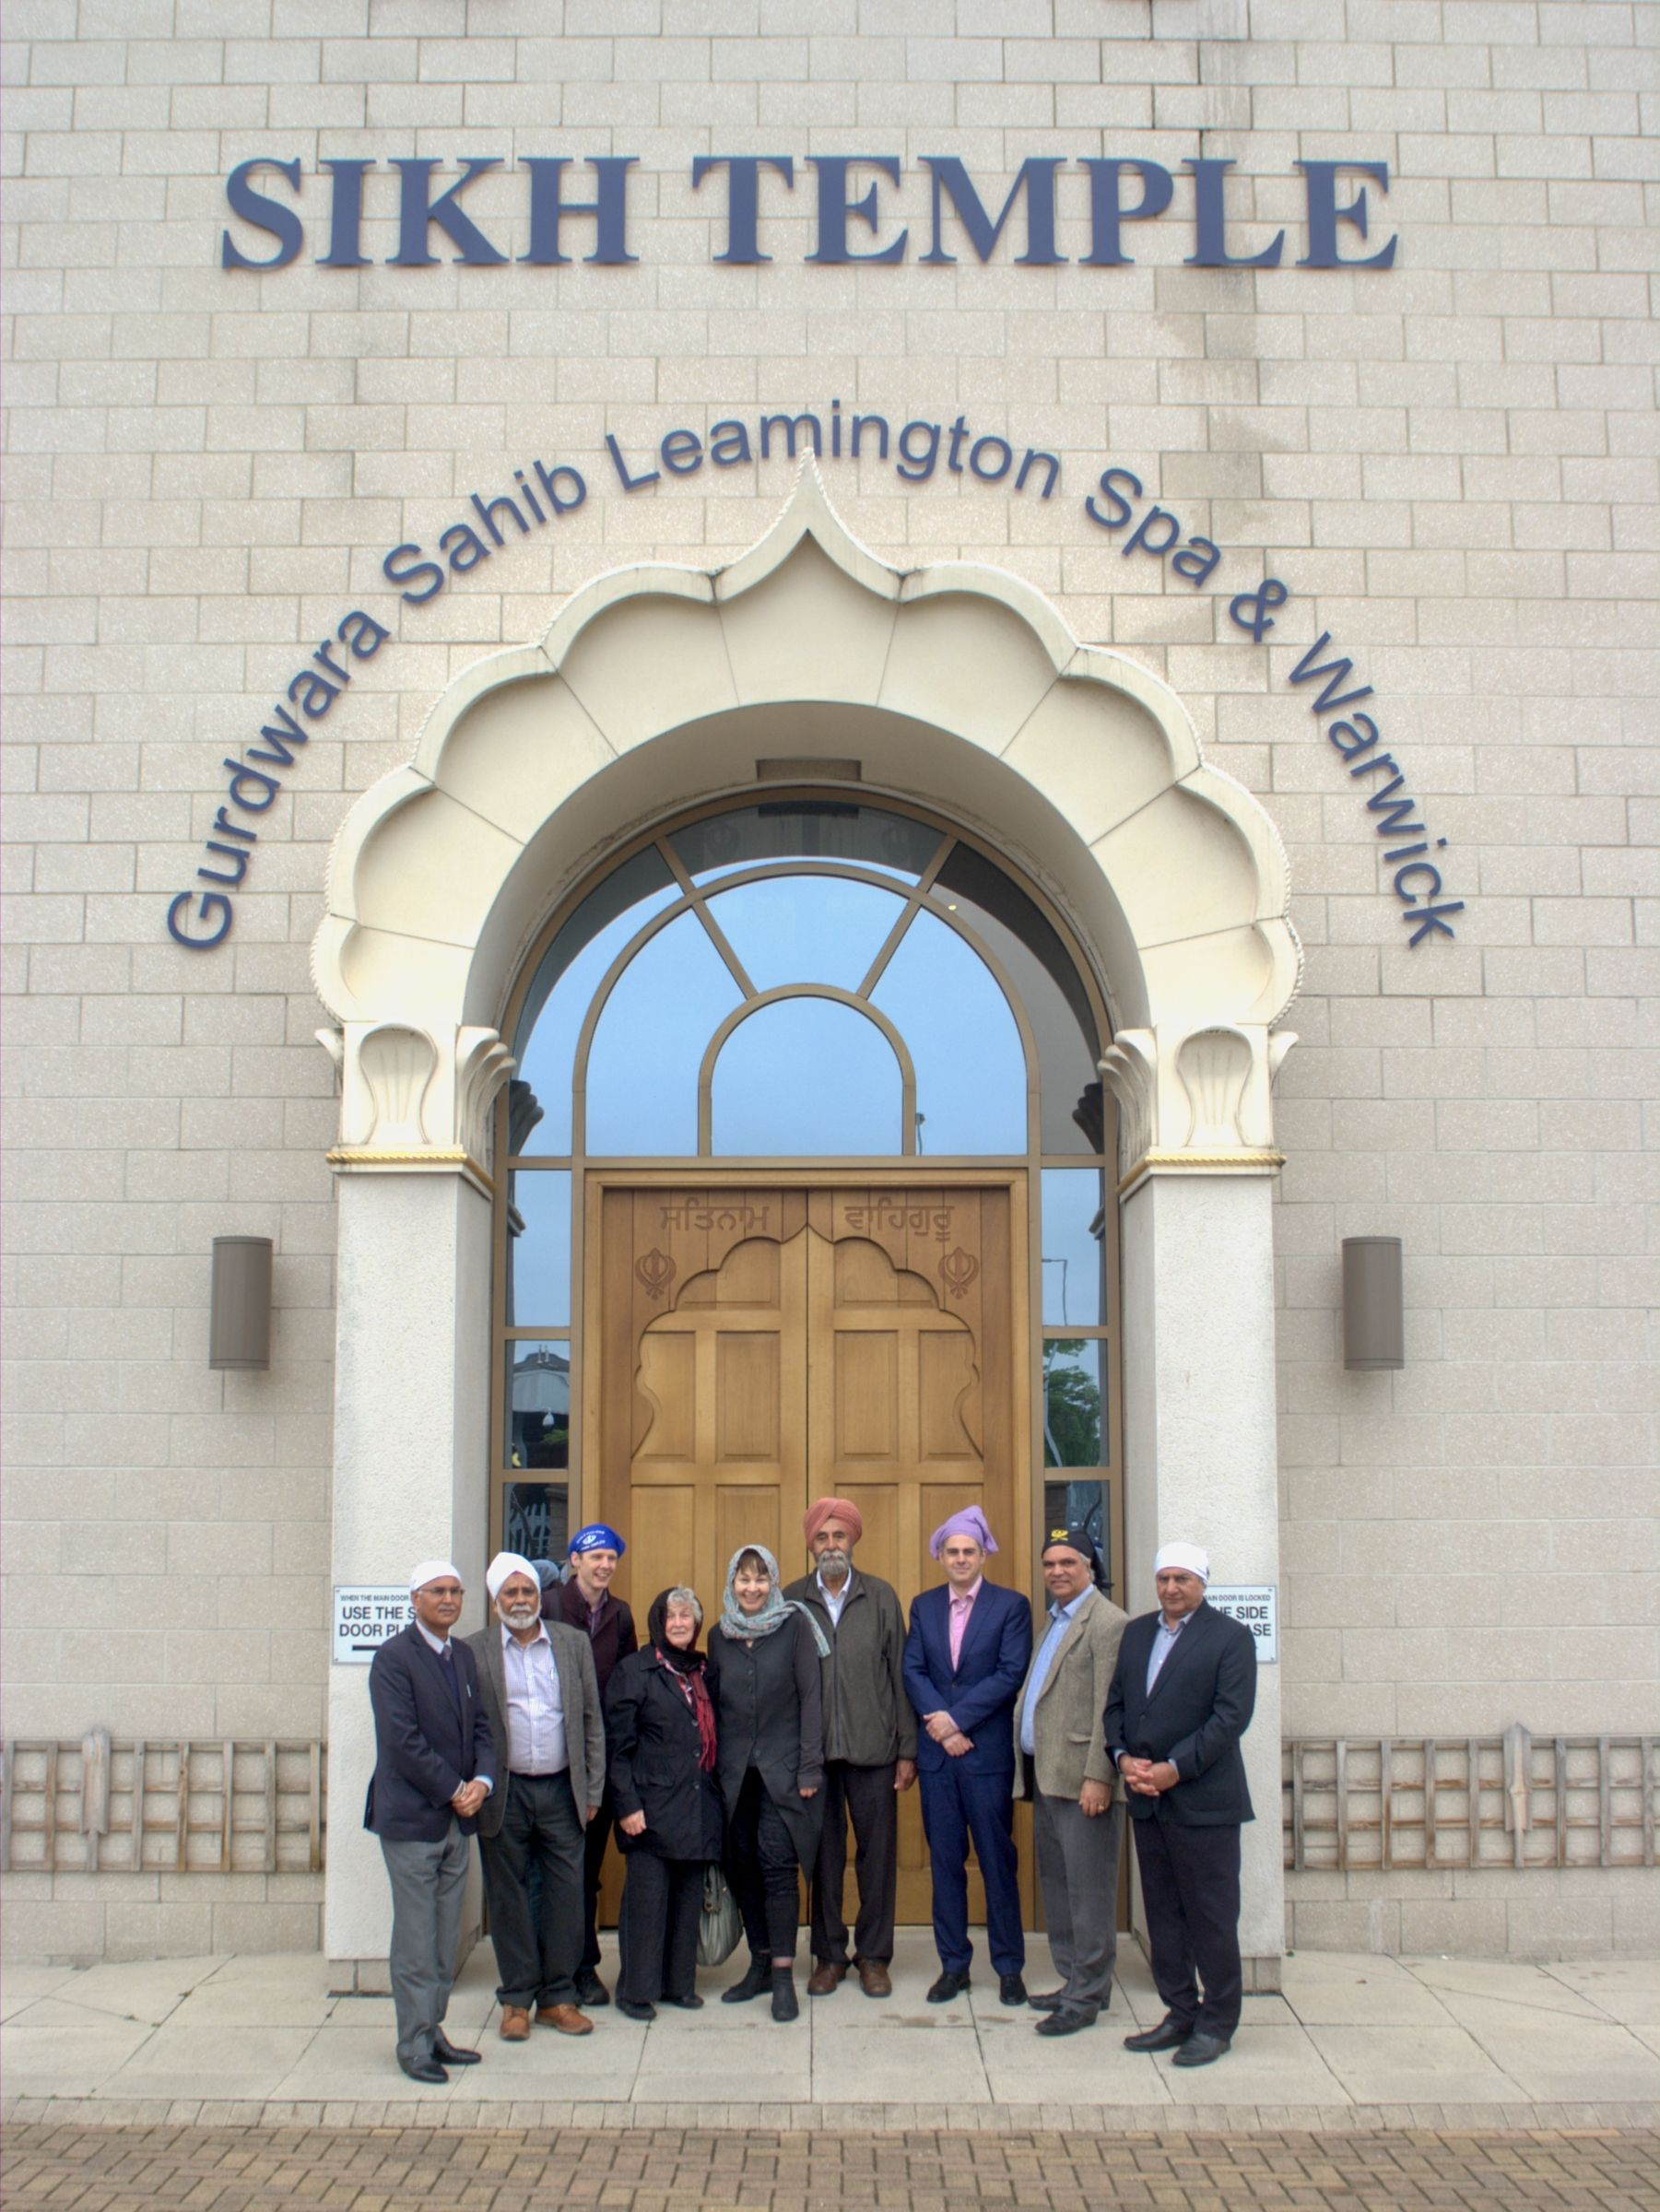 sikh temple leamington spa in warwickshire members of the temple pose with Green party co-leader Caroline Lucas